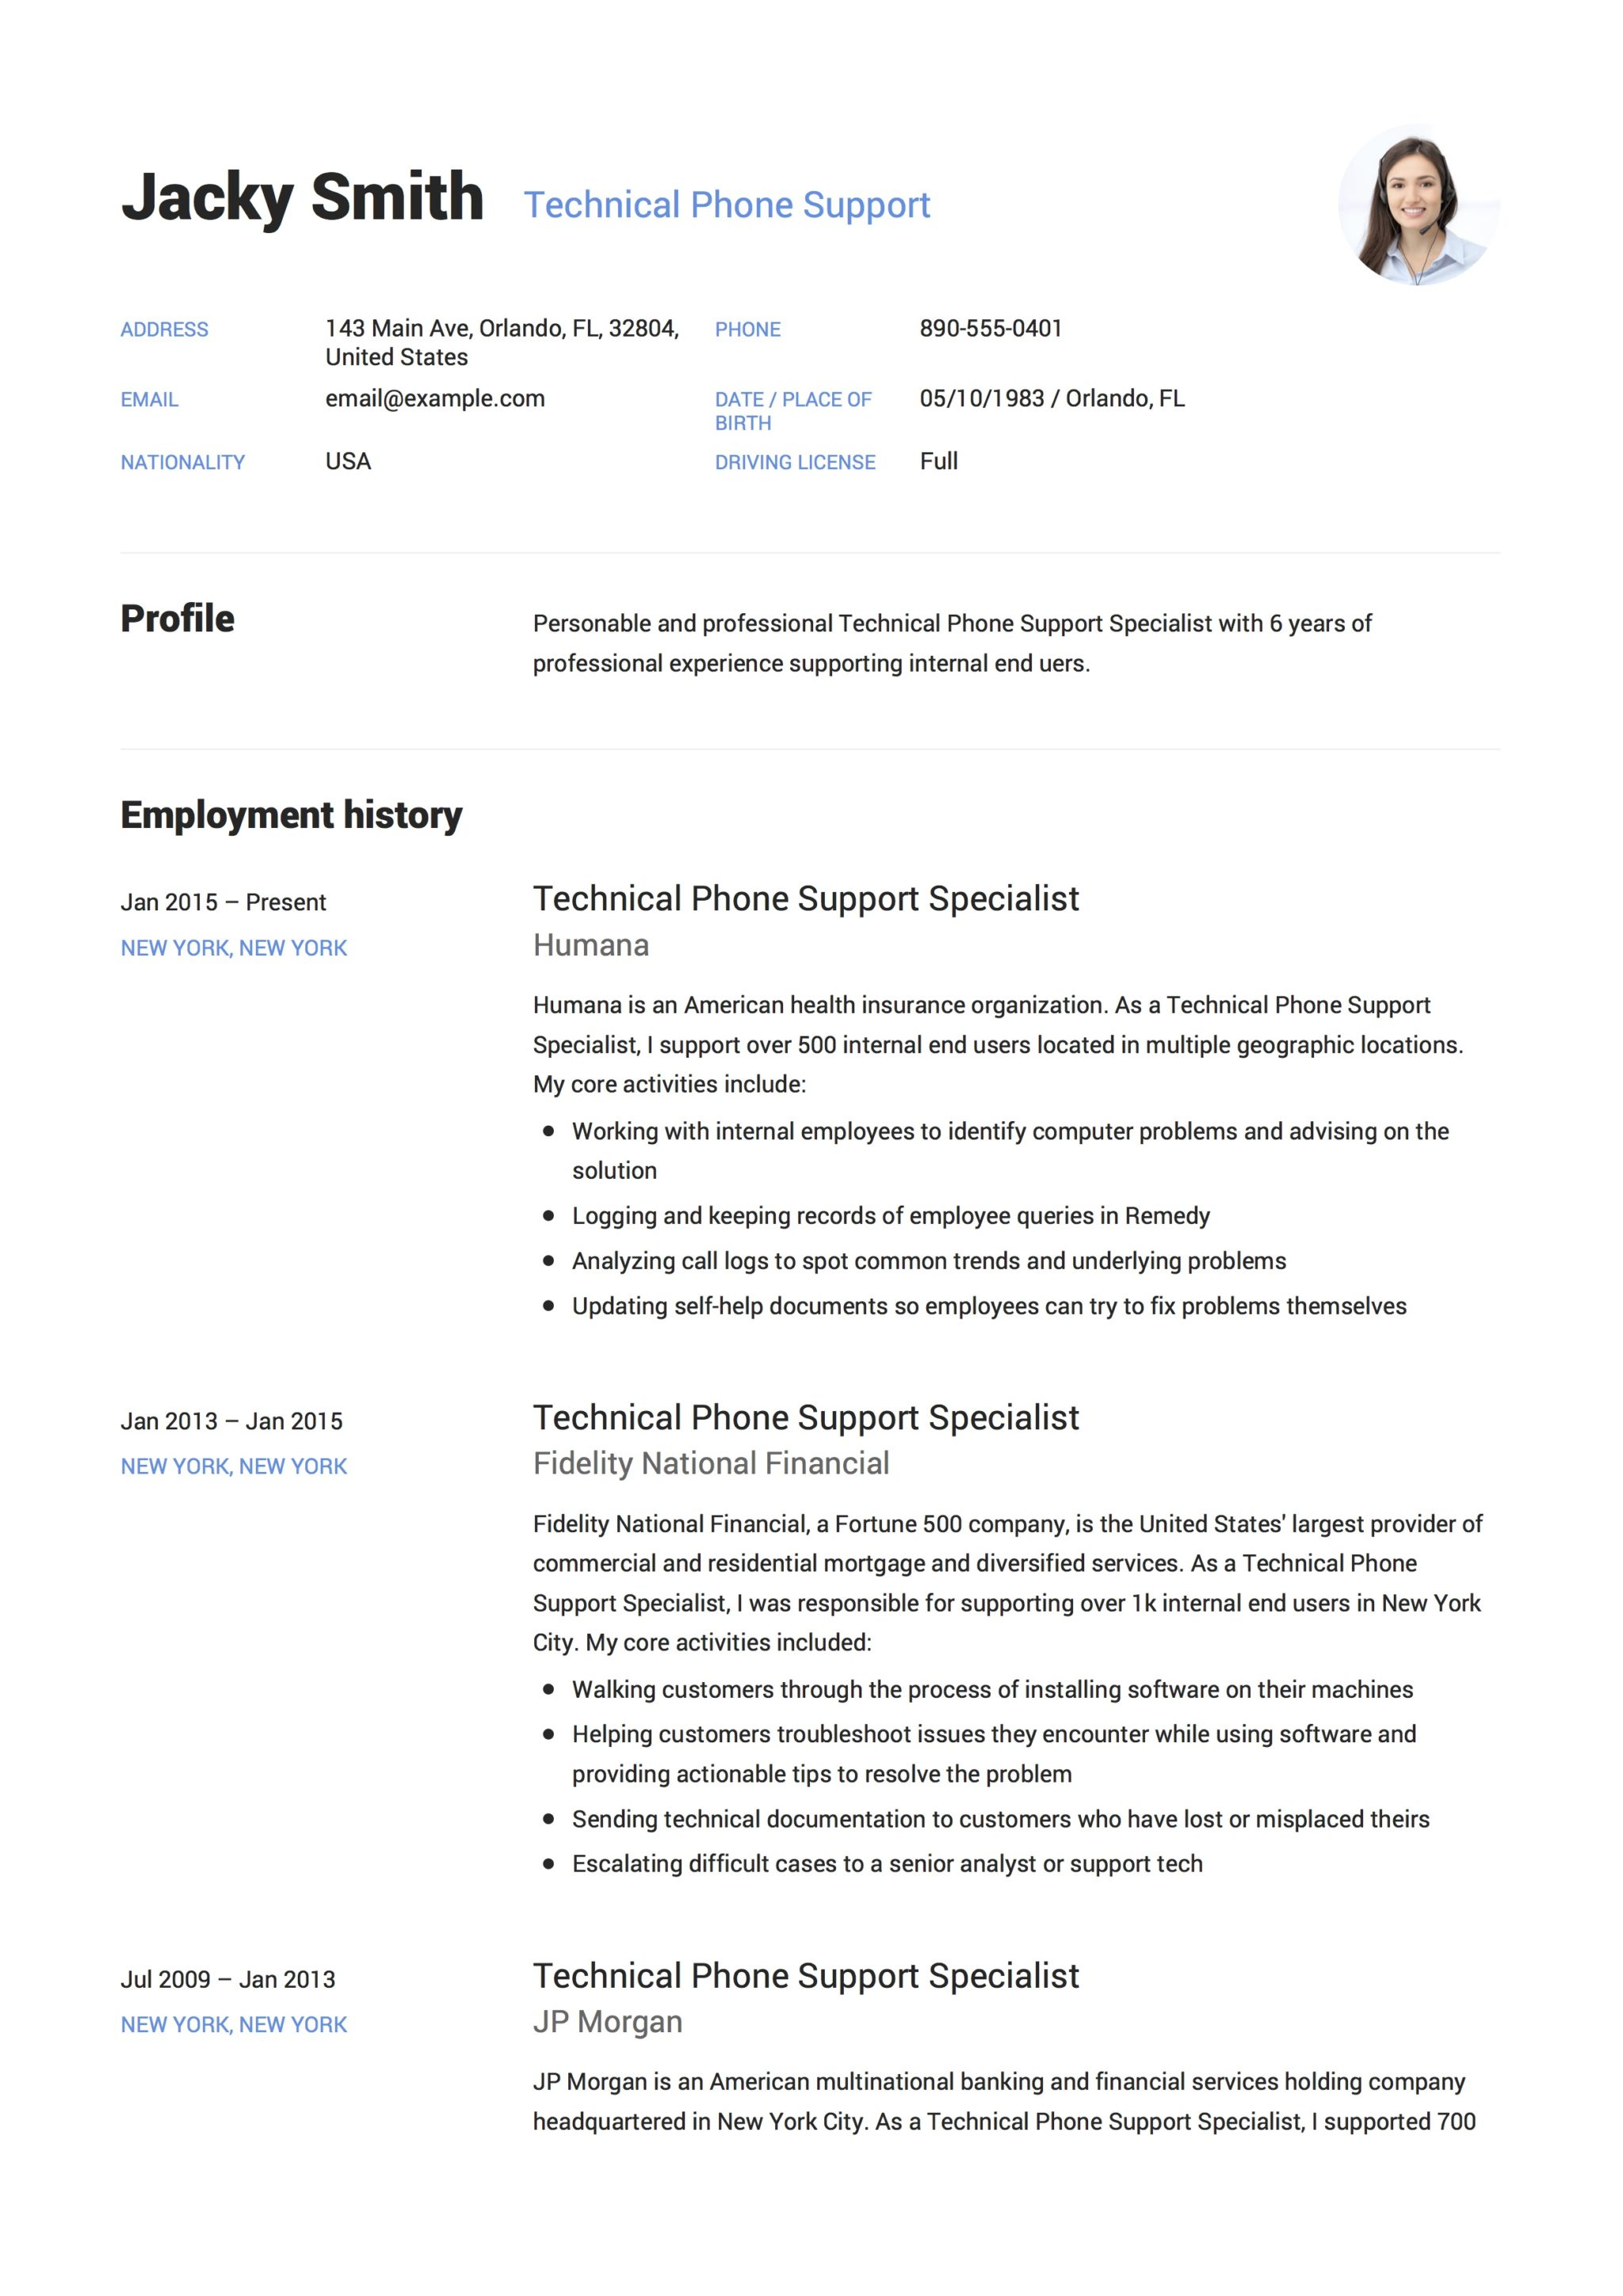 Resume Sample Technical Phone Support 1  Updating My Resume